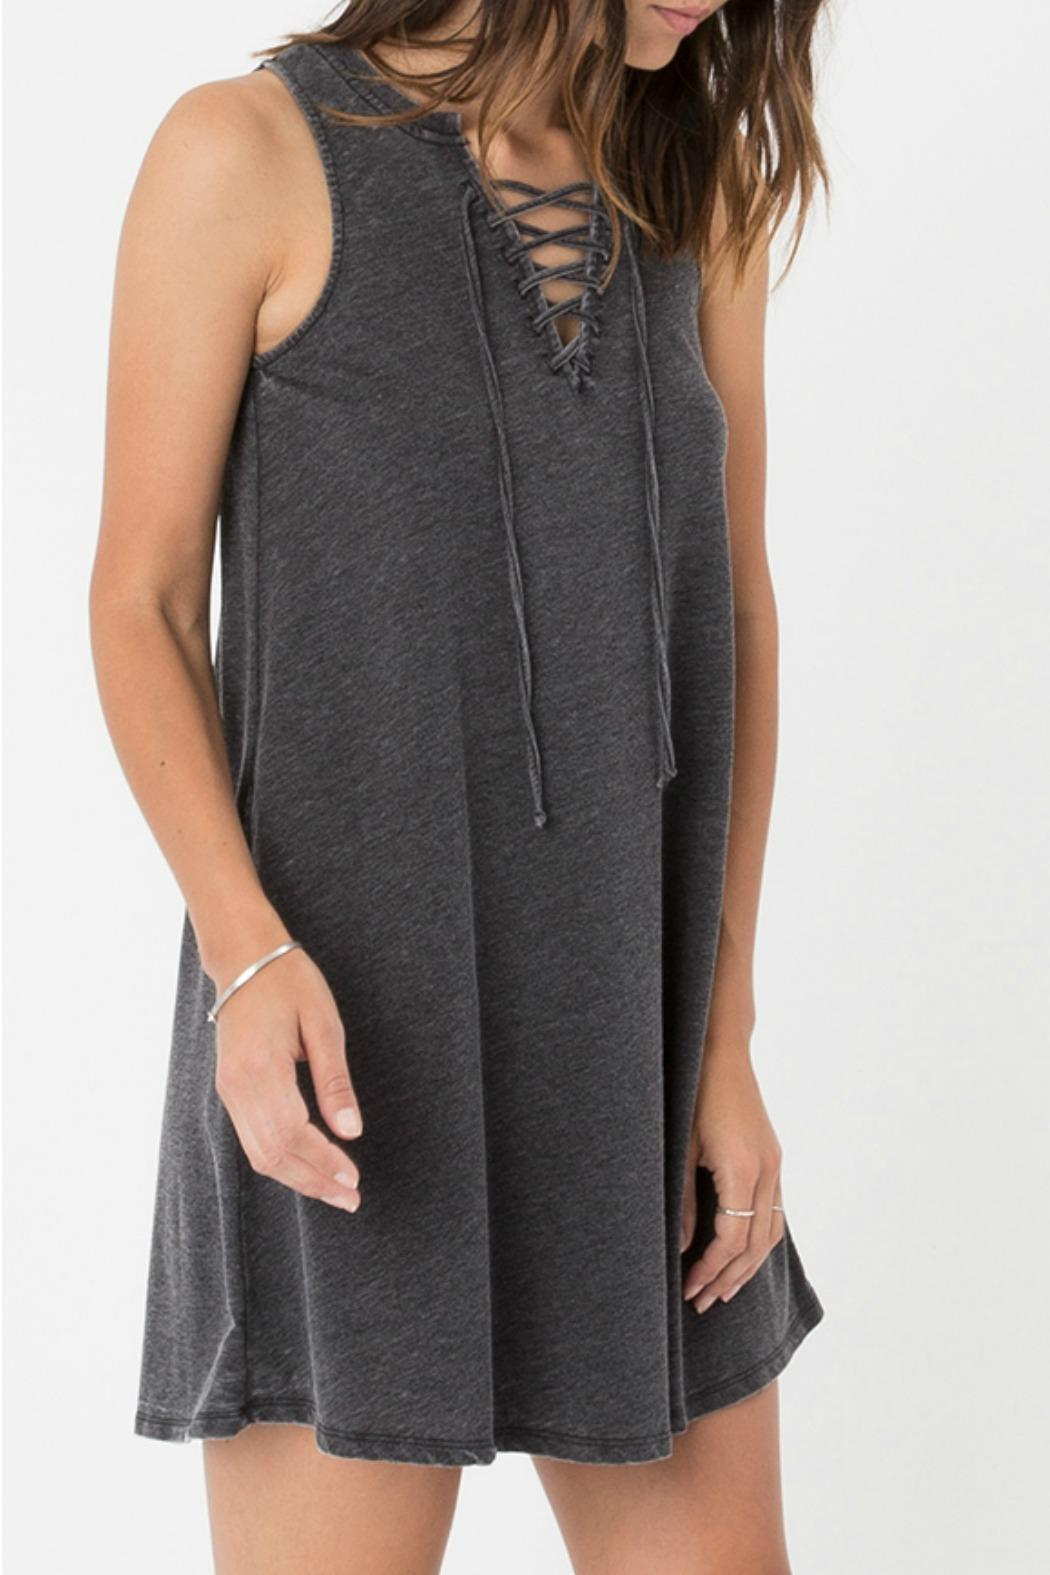 z supply Lace-Up Mini Dress - Side Cropped Image